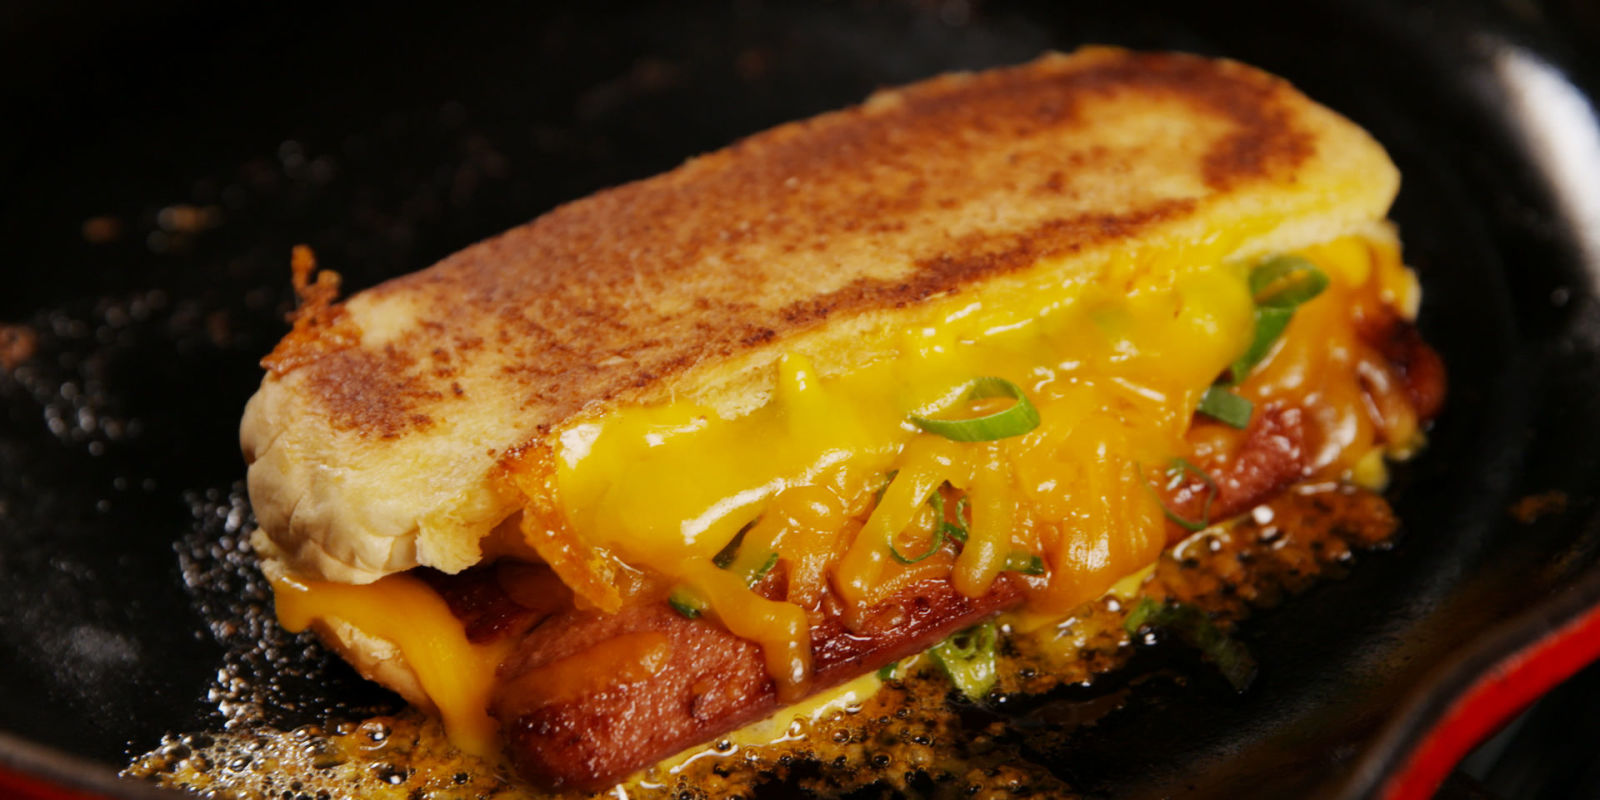 Grilled Cheese Hot Dog Video